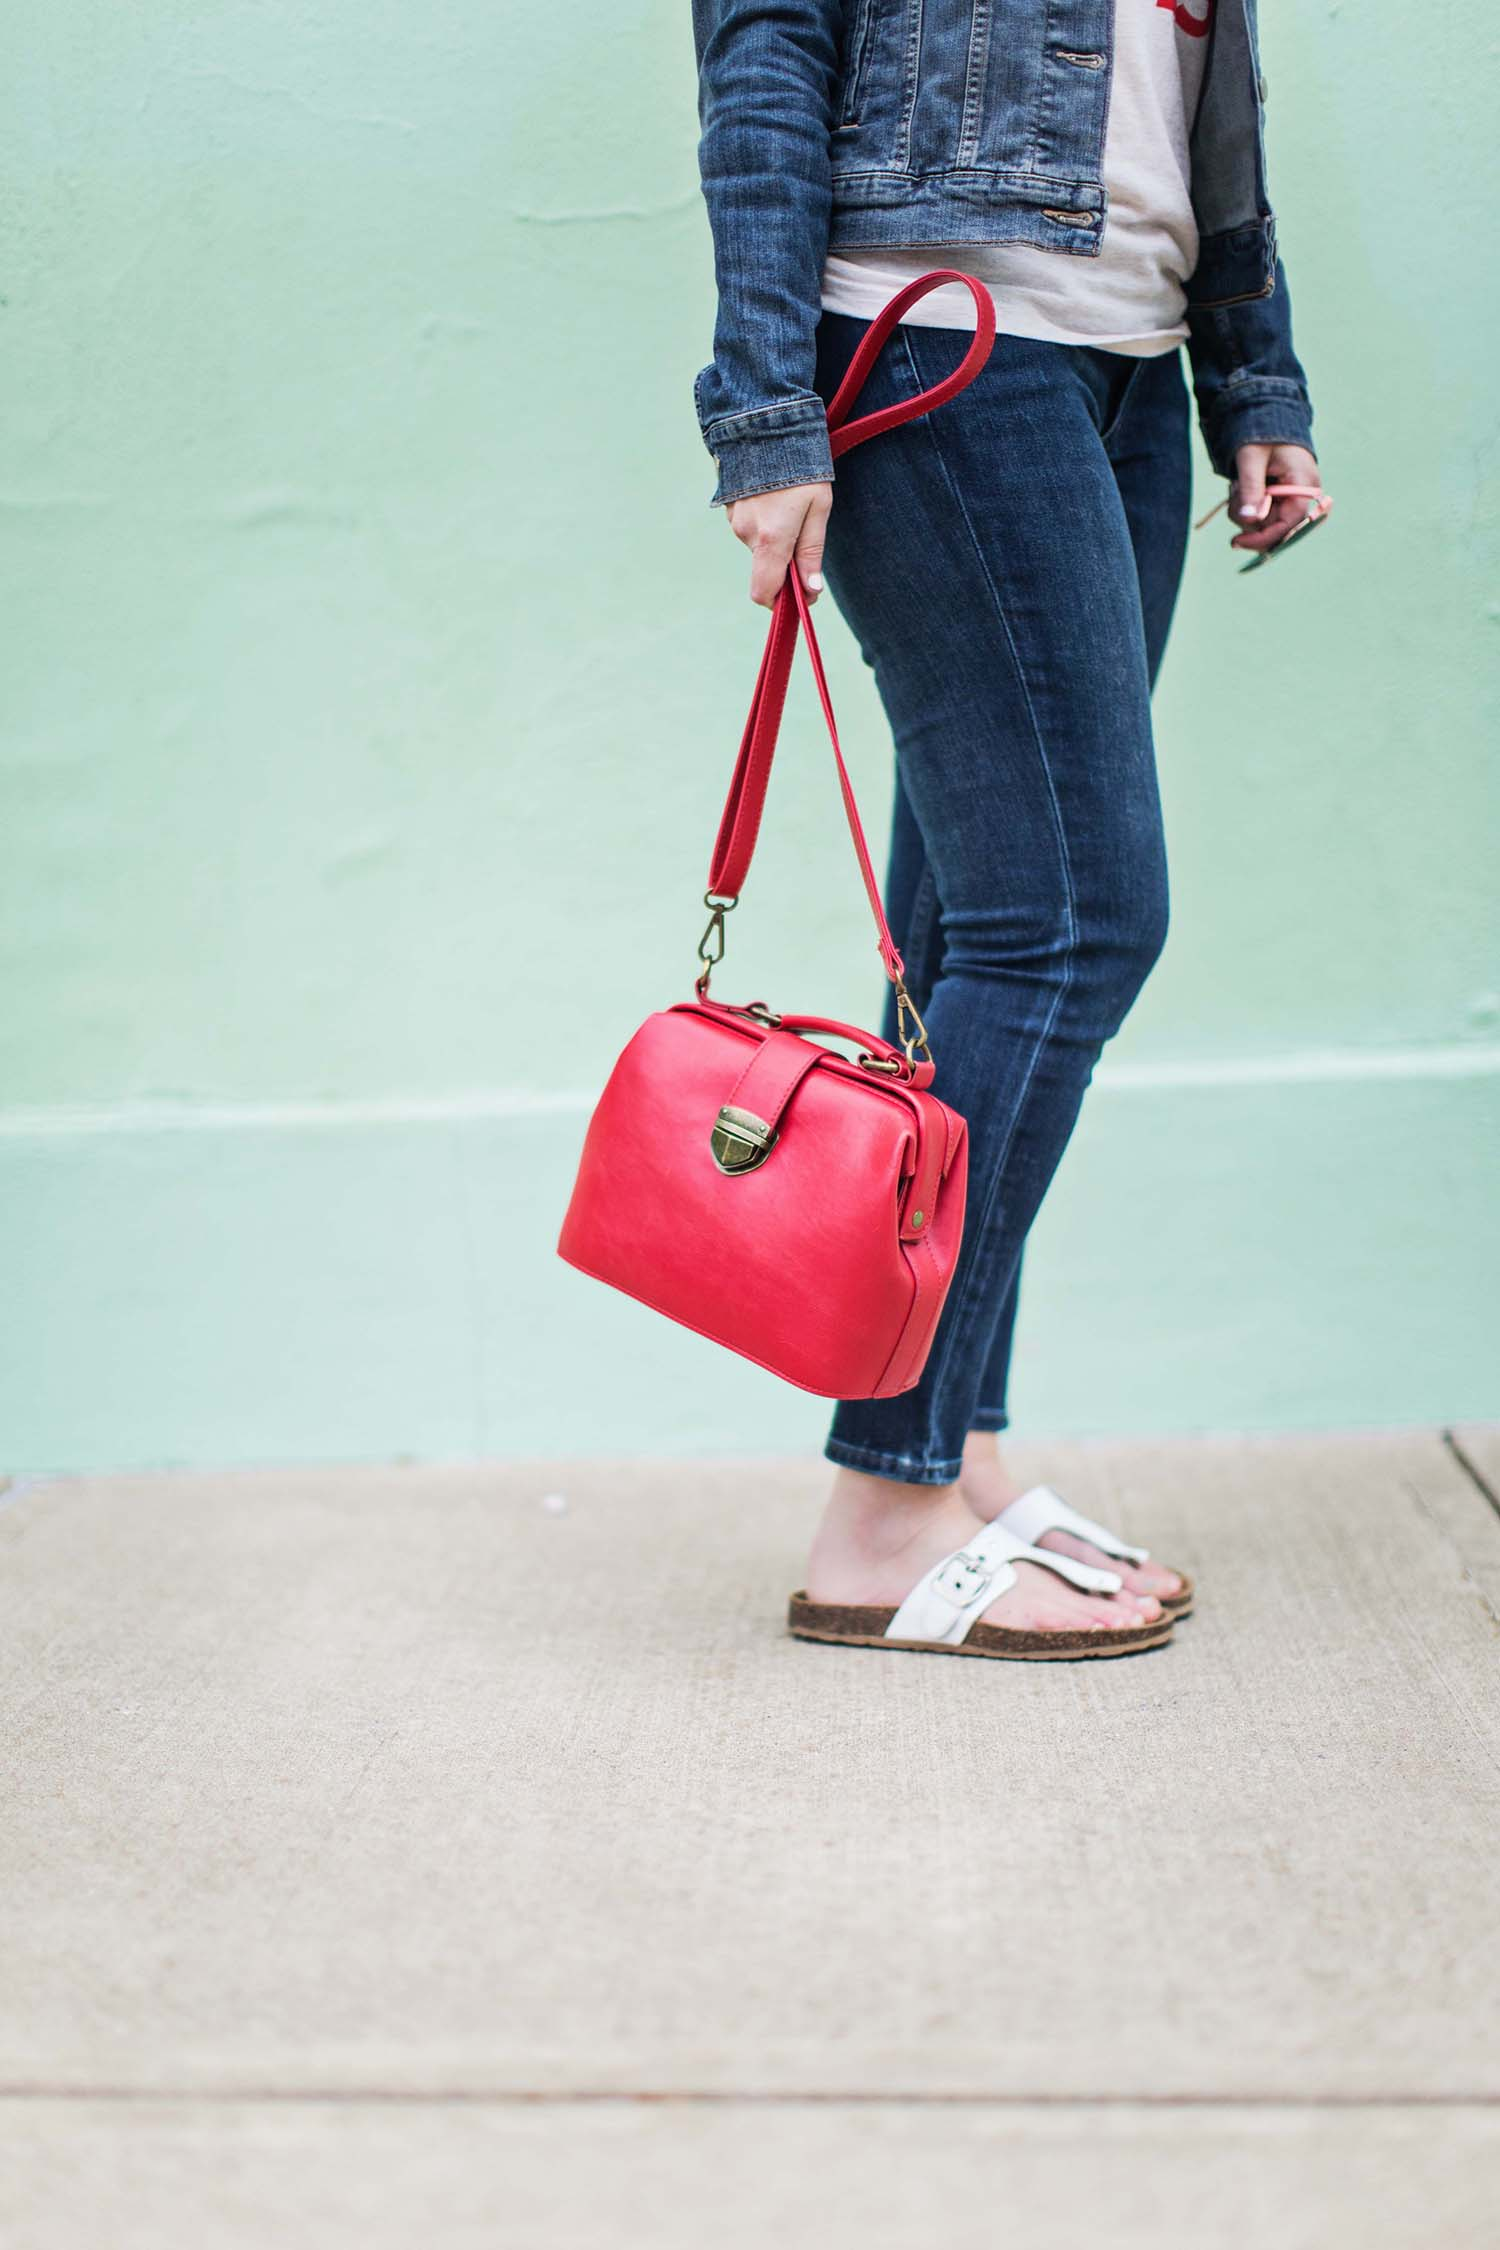 Red purse white sandals